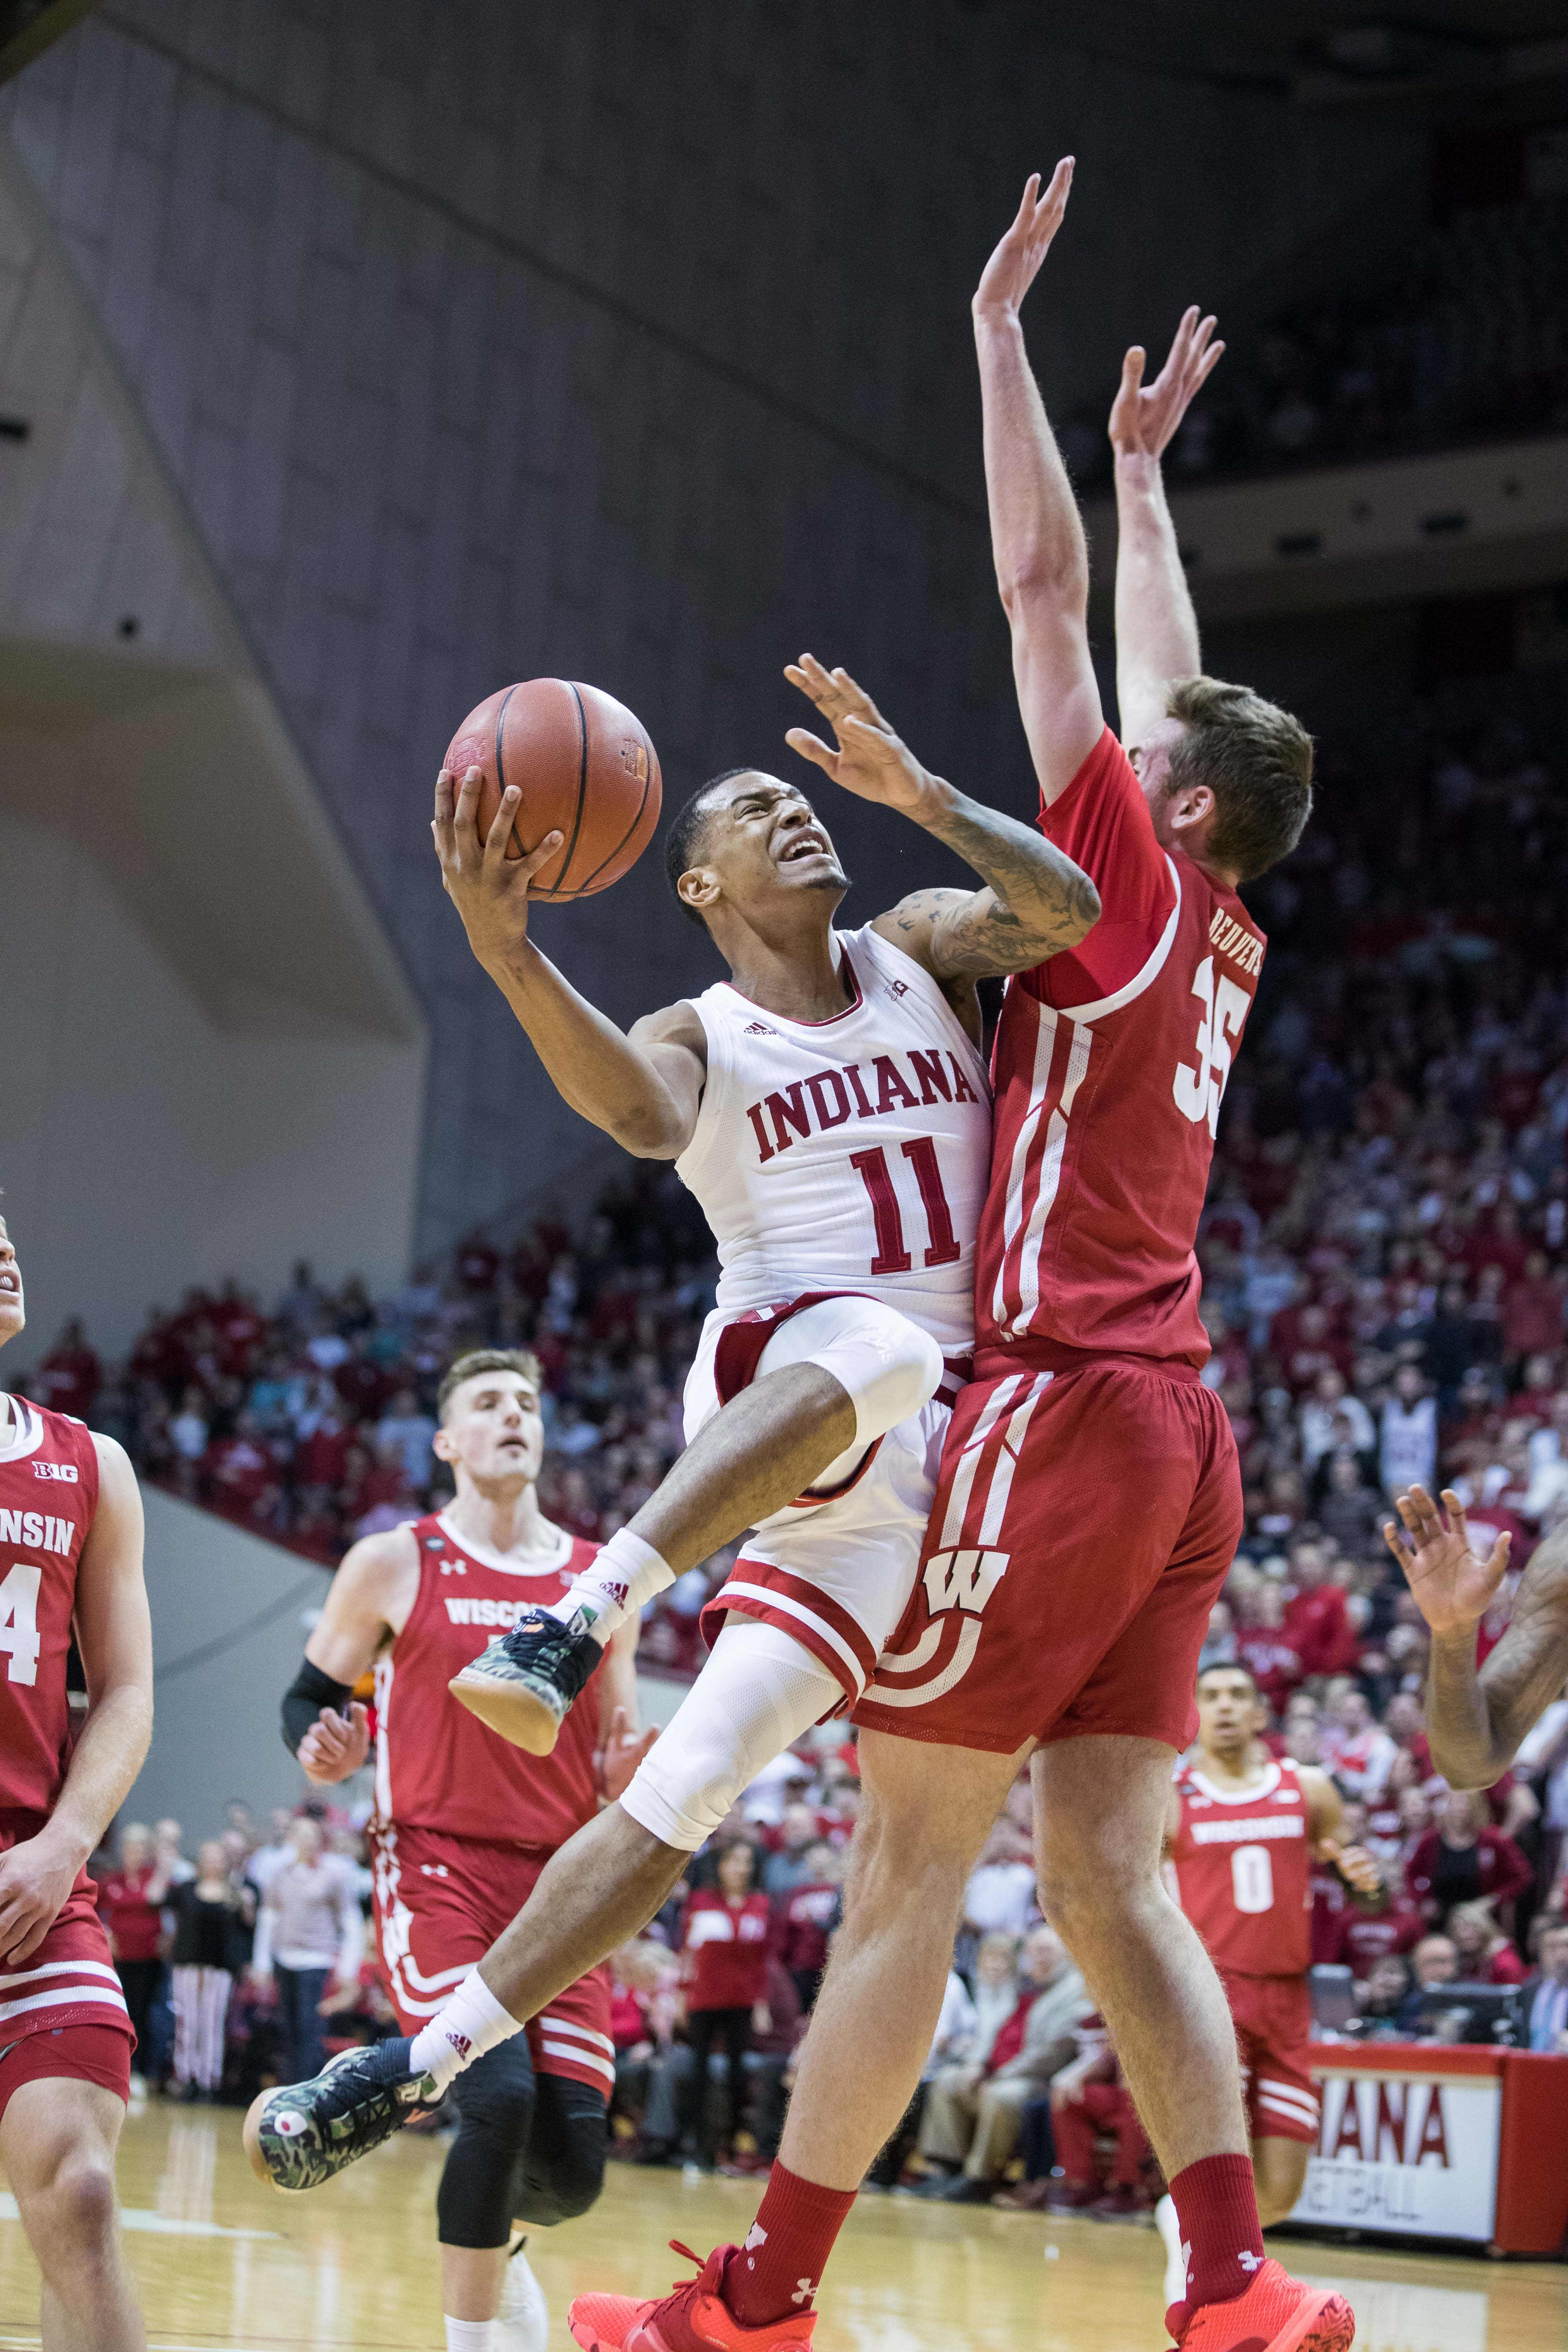 Indiana Hoosiers guard Devonte Green shoots the ball while Wisconsin Badgers forward Nate Reuvers defends in the first half at Simon Skjodt Assembly Hall